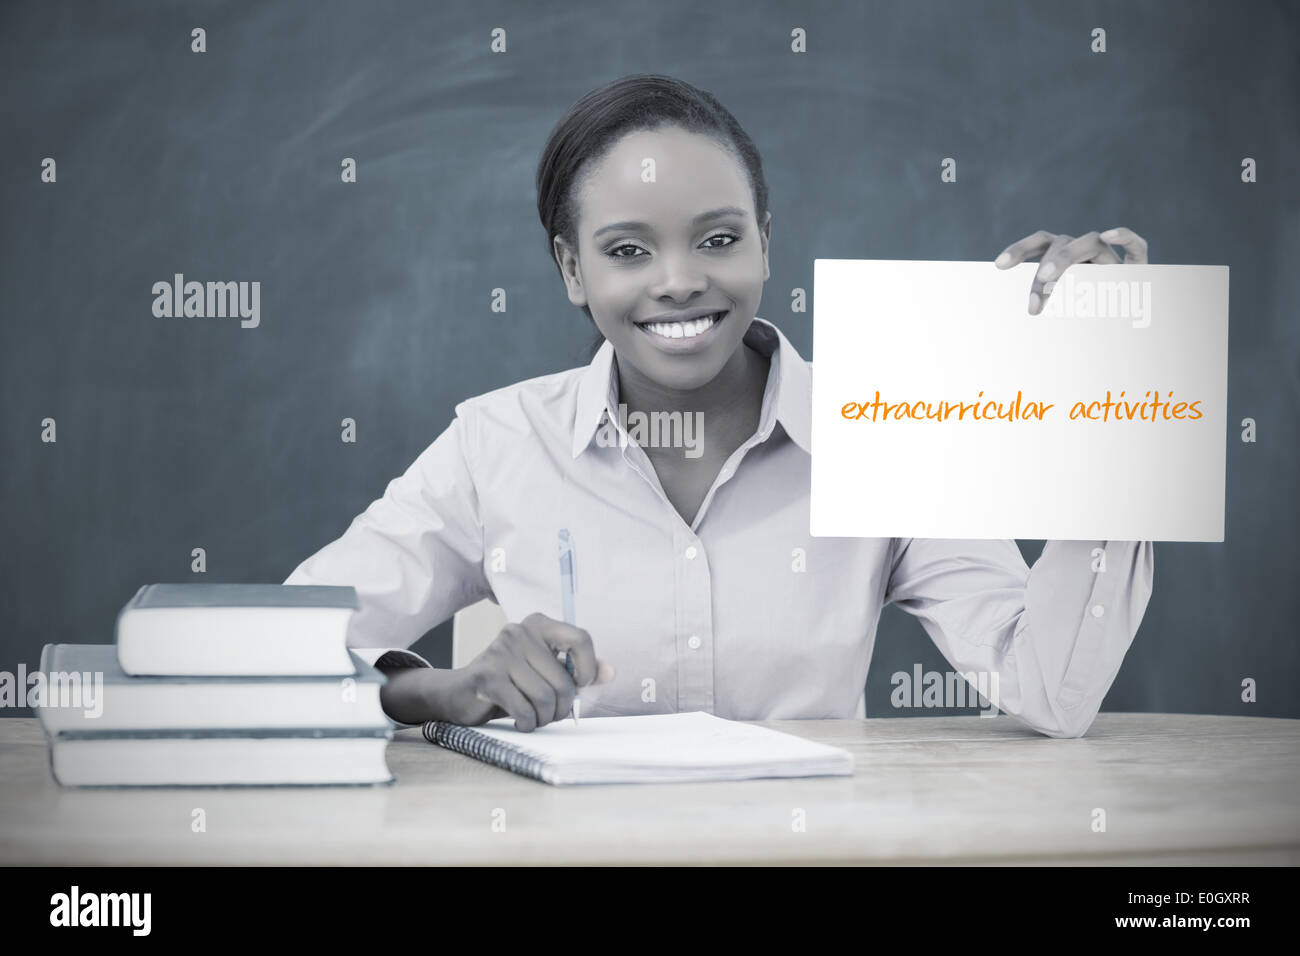 Happy teacher holding page showing extracurricular activities - Stock Image